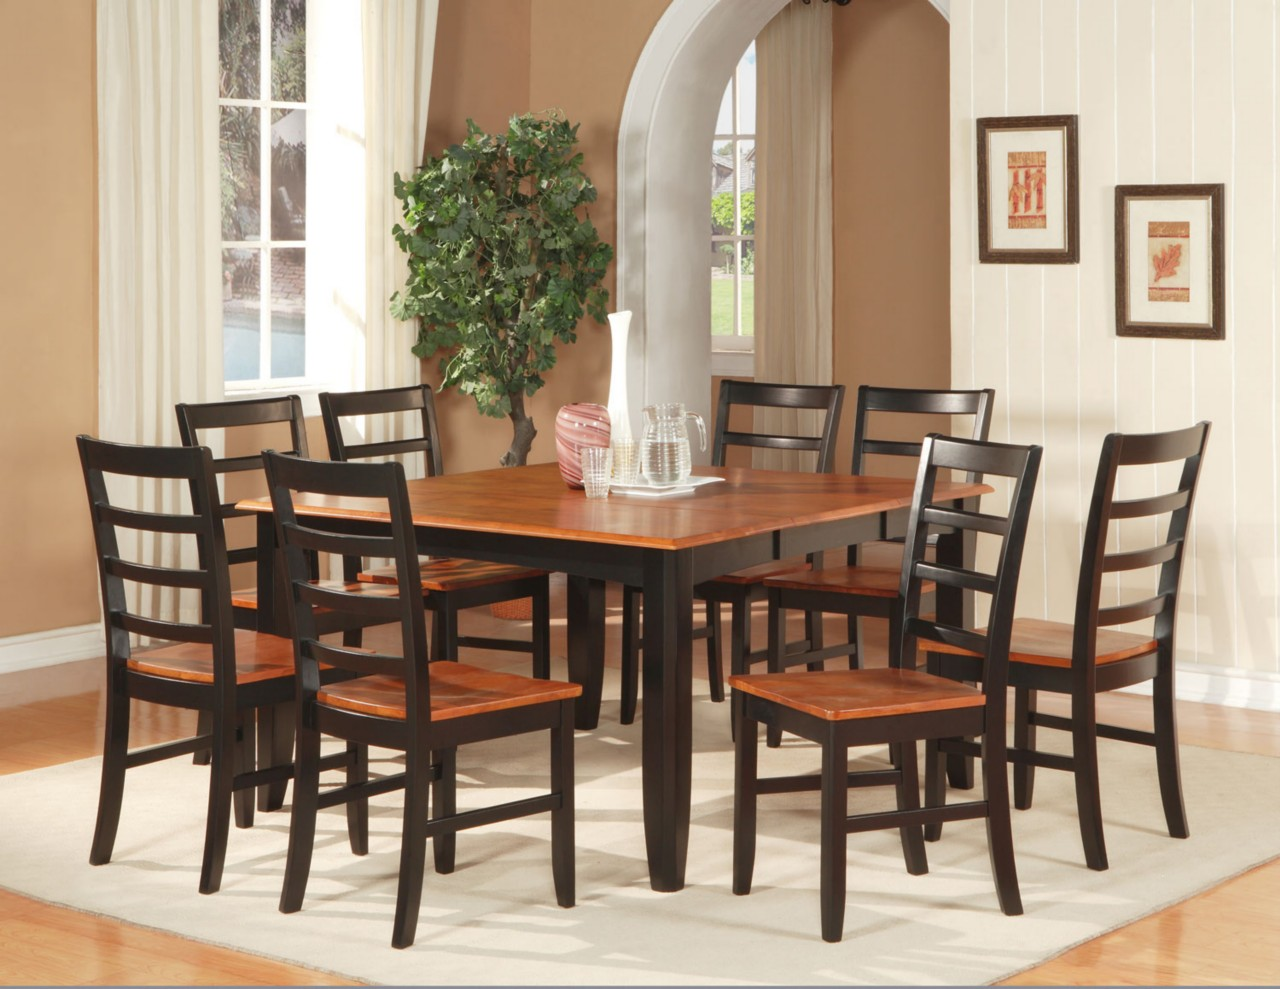 7 PC SQUARE DINETTE DINING ROOM SET TABLE WITH 6 WOOD SEAT CHAIRS, BLACK CHERRY : eBay